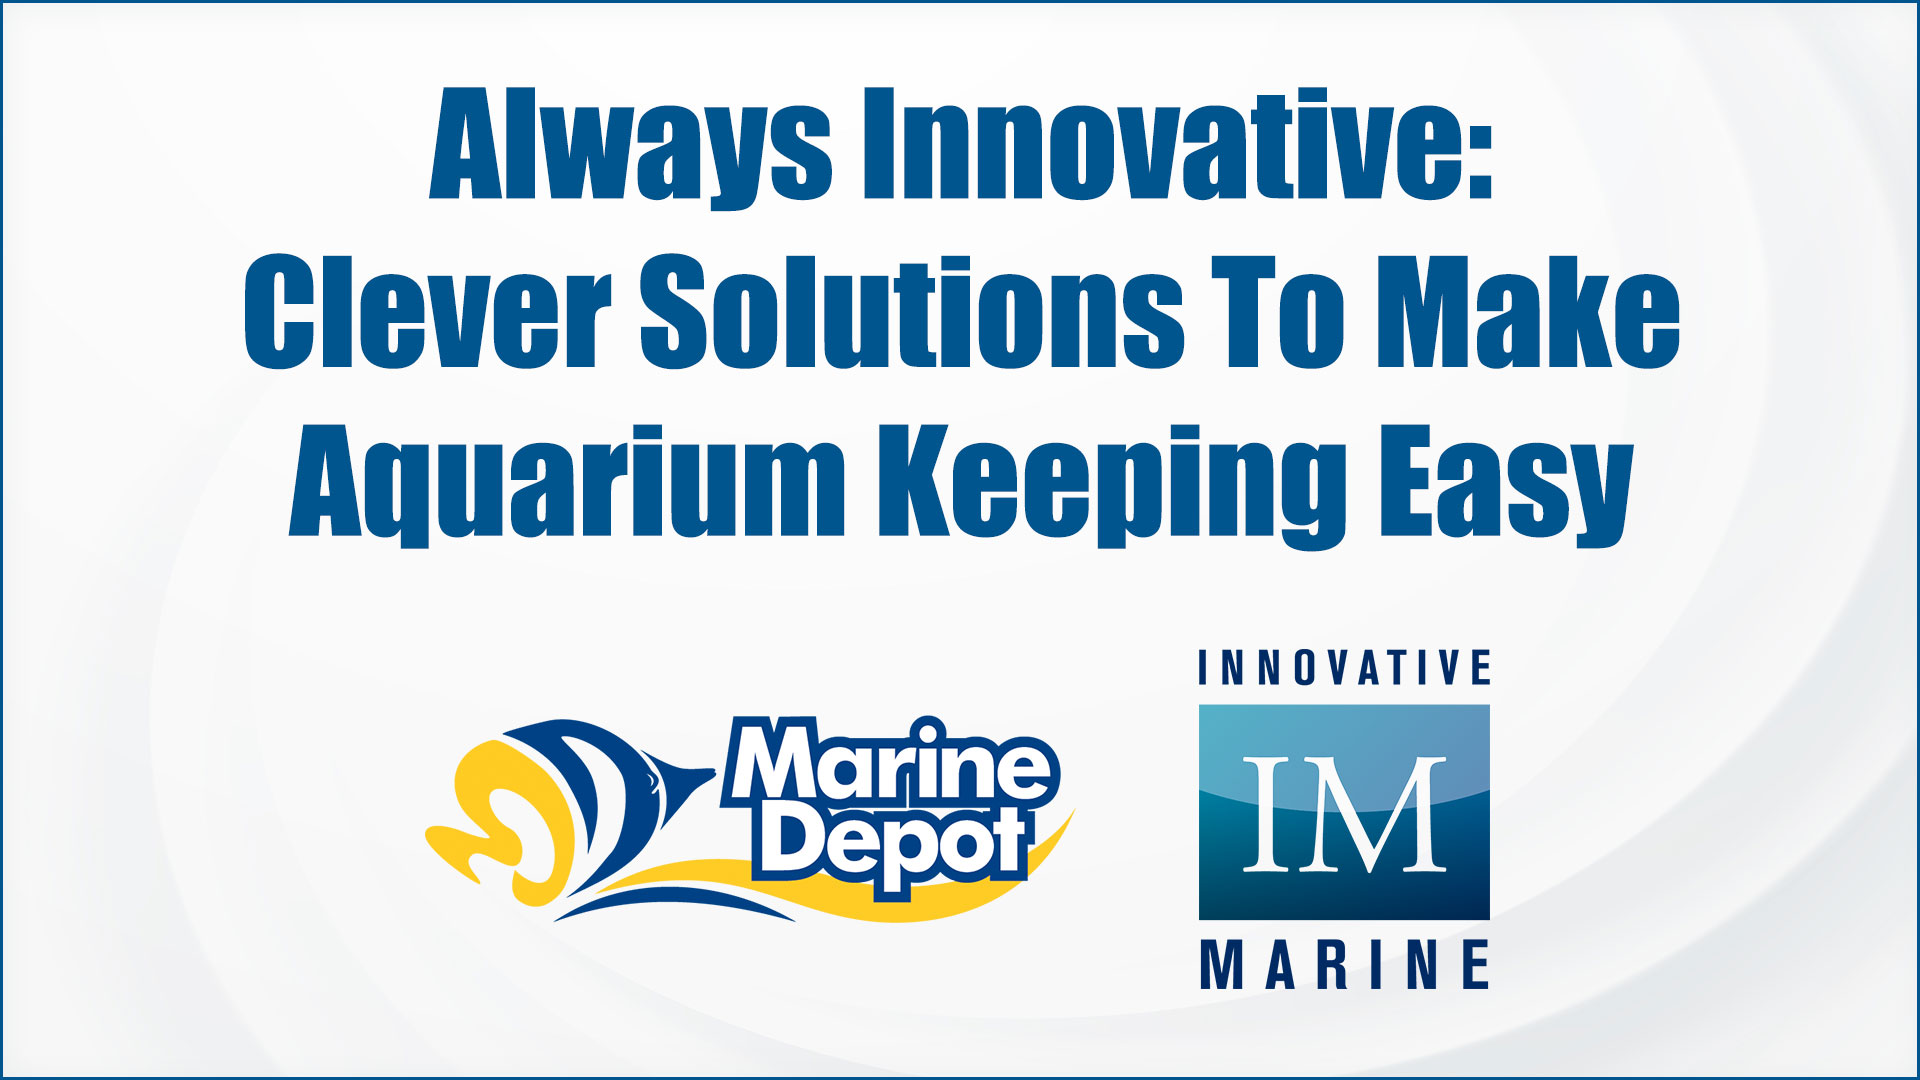 Always Innovative: Clever Solutions to Make Aquarium Keeping Easier - Marine Depot Chats with Experts #5